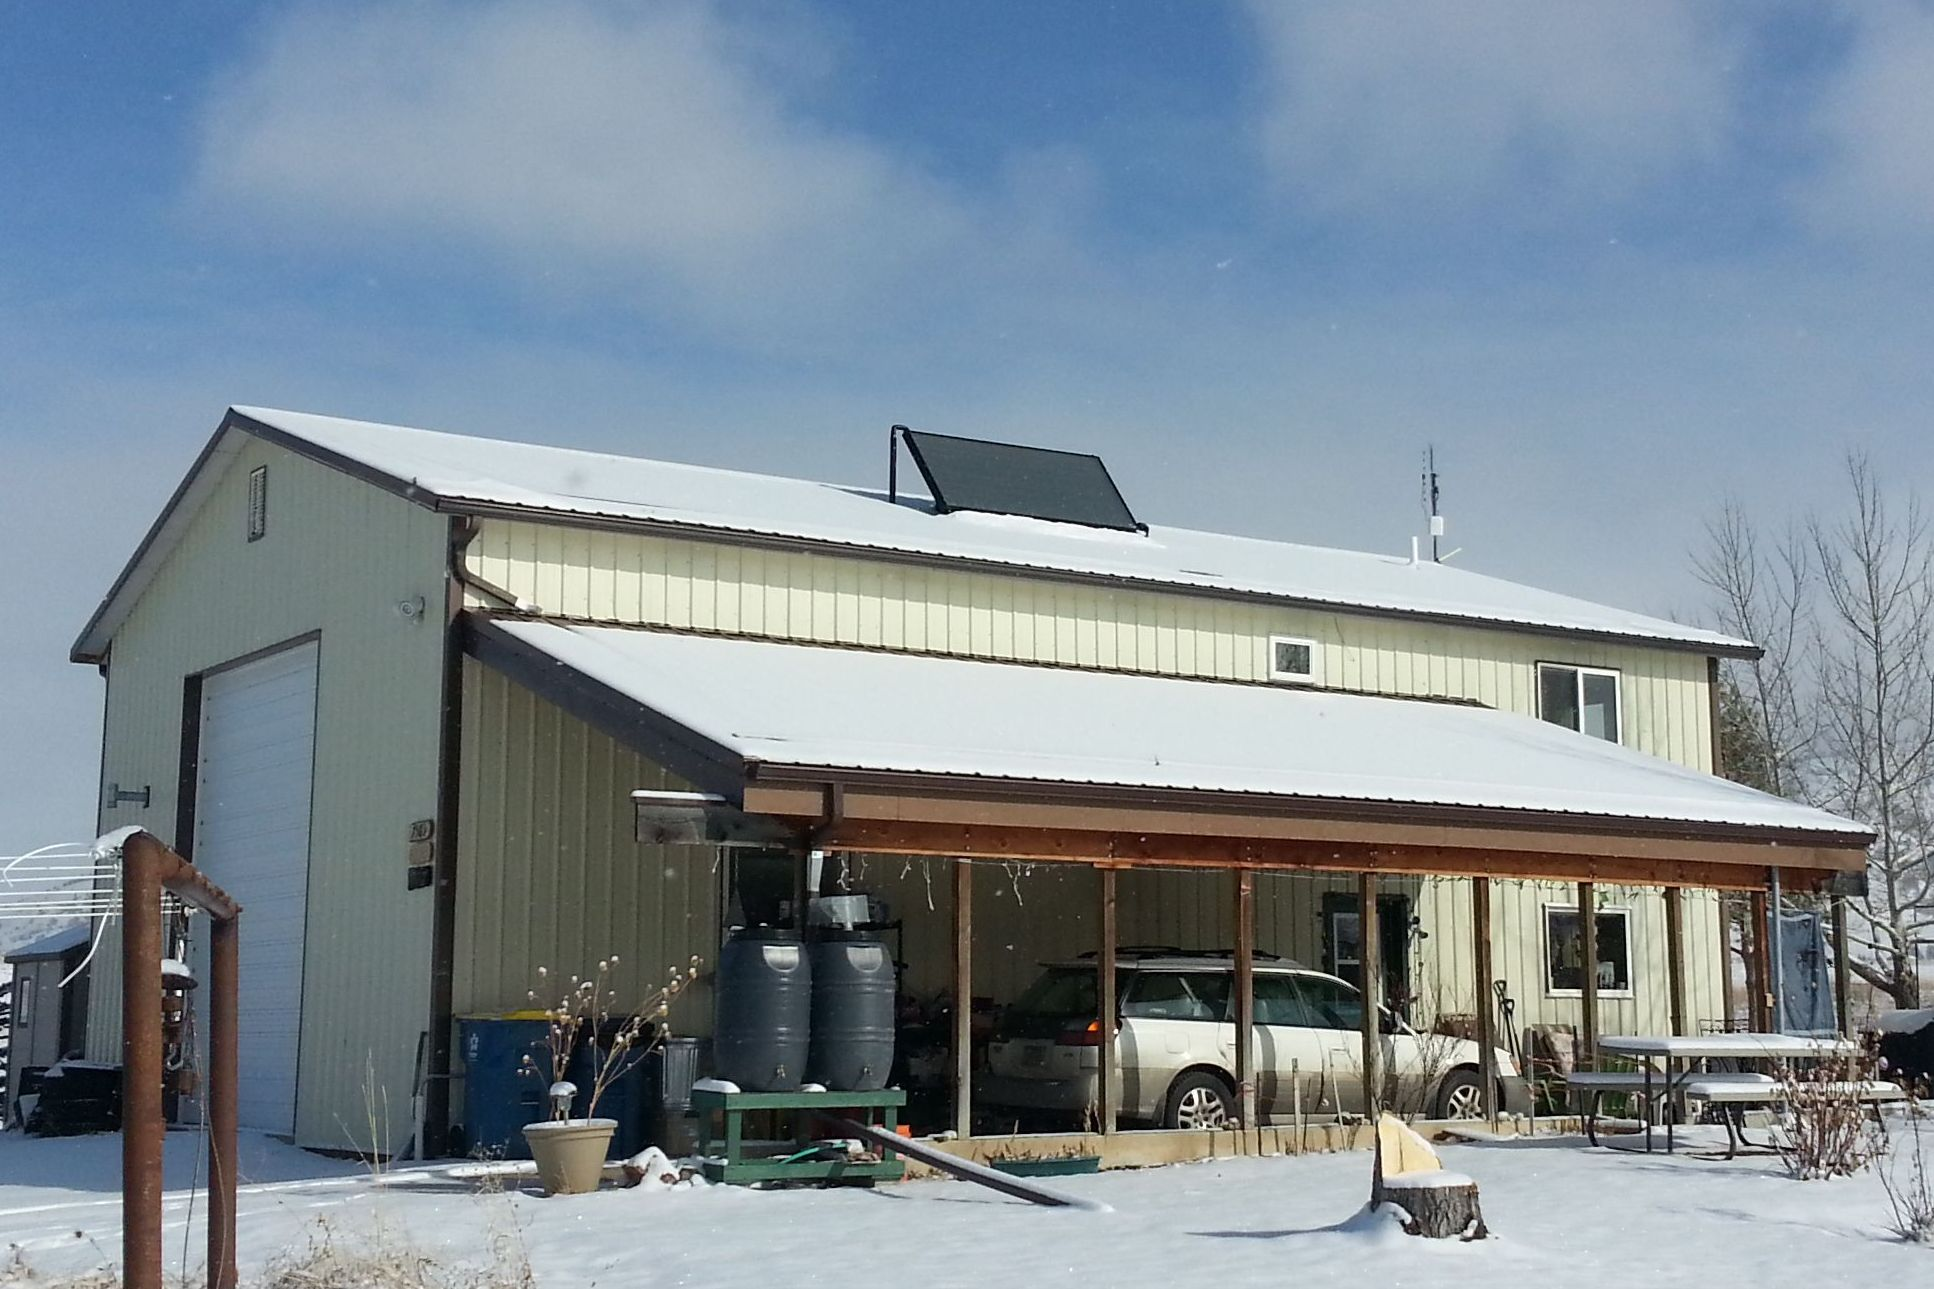 Bozeman Couple Saves on Propane with Solar Water Heating